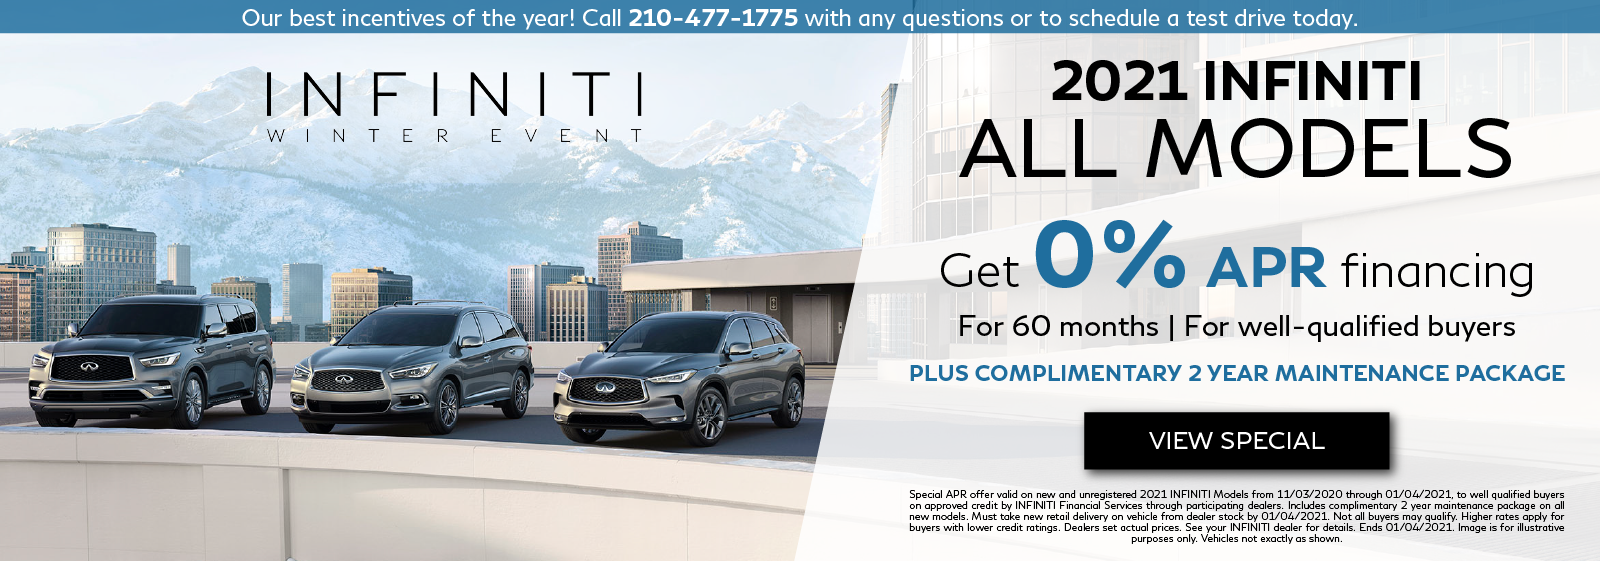 Well-qualified buyers can get 0% APR financing for 60 months on all new 2021 INFINITI models plus get two years complimentary scheduled maintenance. Click to view special.